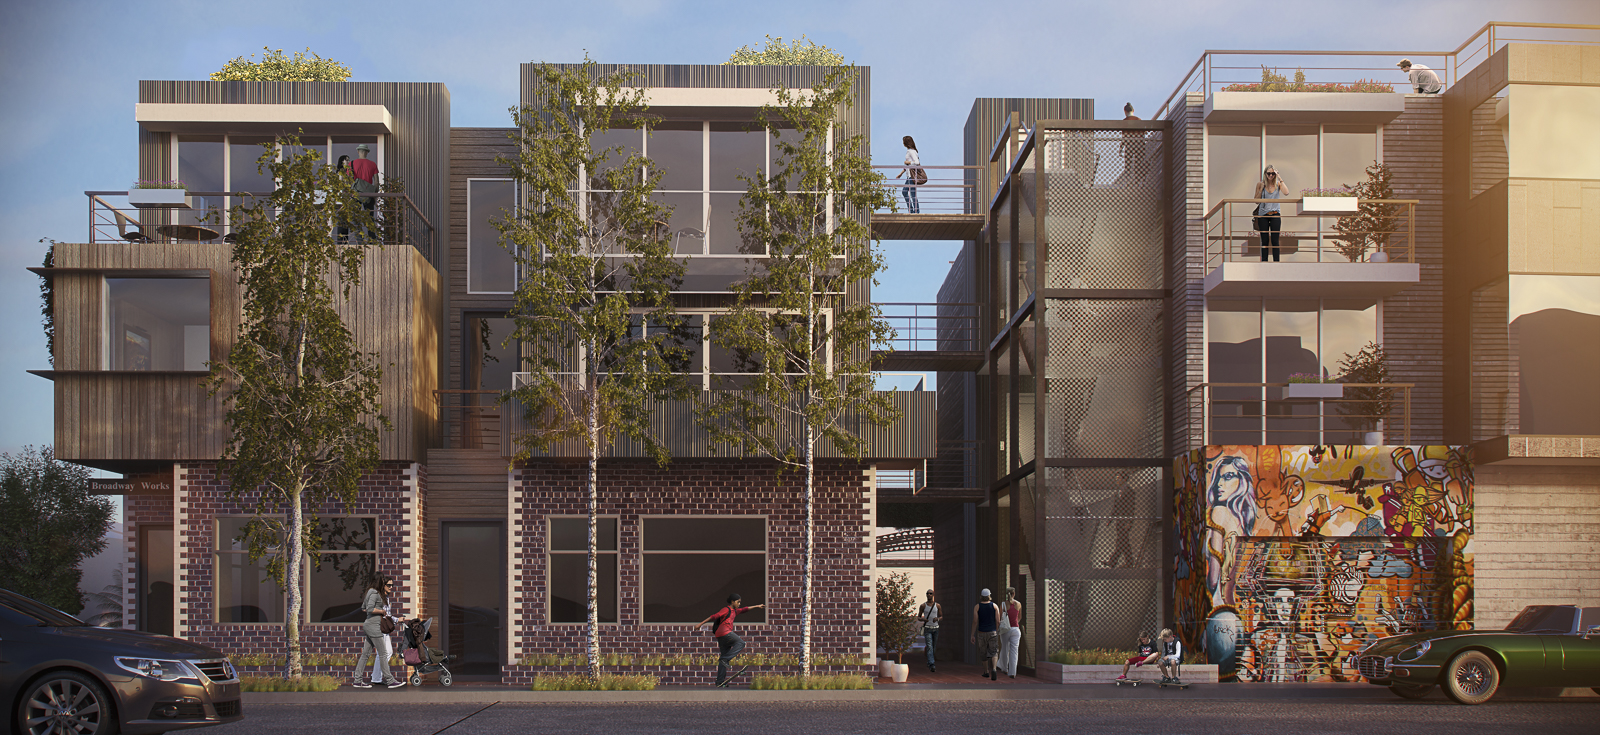 S.E.A.-Studio-Environmental-Architecture-David-Hertz-FAIA-Abbot-Kinney-Hotel-Venice-Place-adaptive-reuse-sustainable-regenerative-restorative-design-pedestrian-walkable-urbanism-local-community-context-modern-destination-inspired-resort-mixed-use-LA-6.jpg